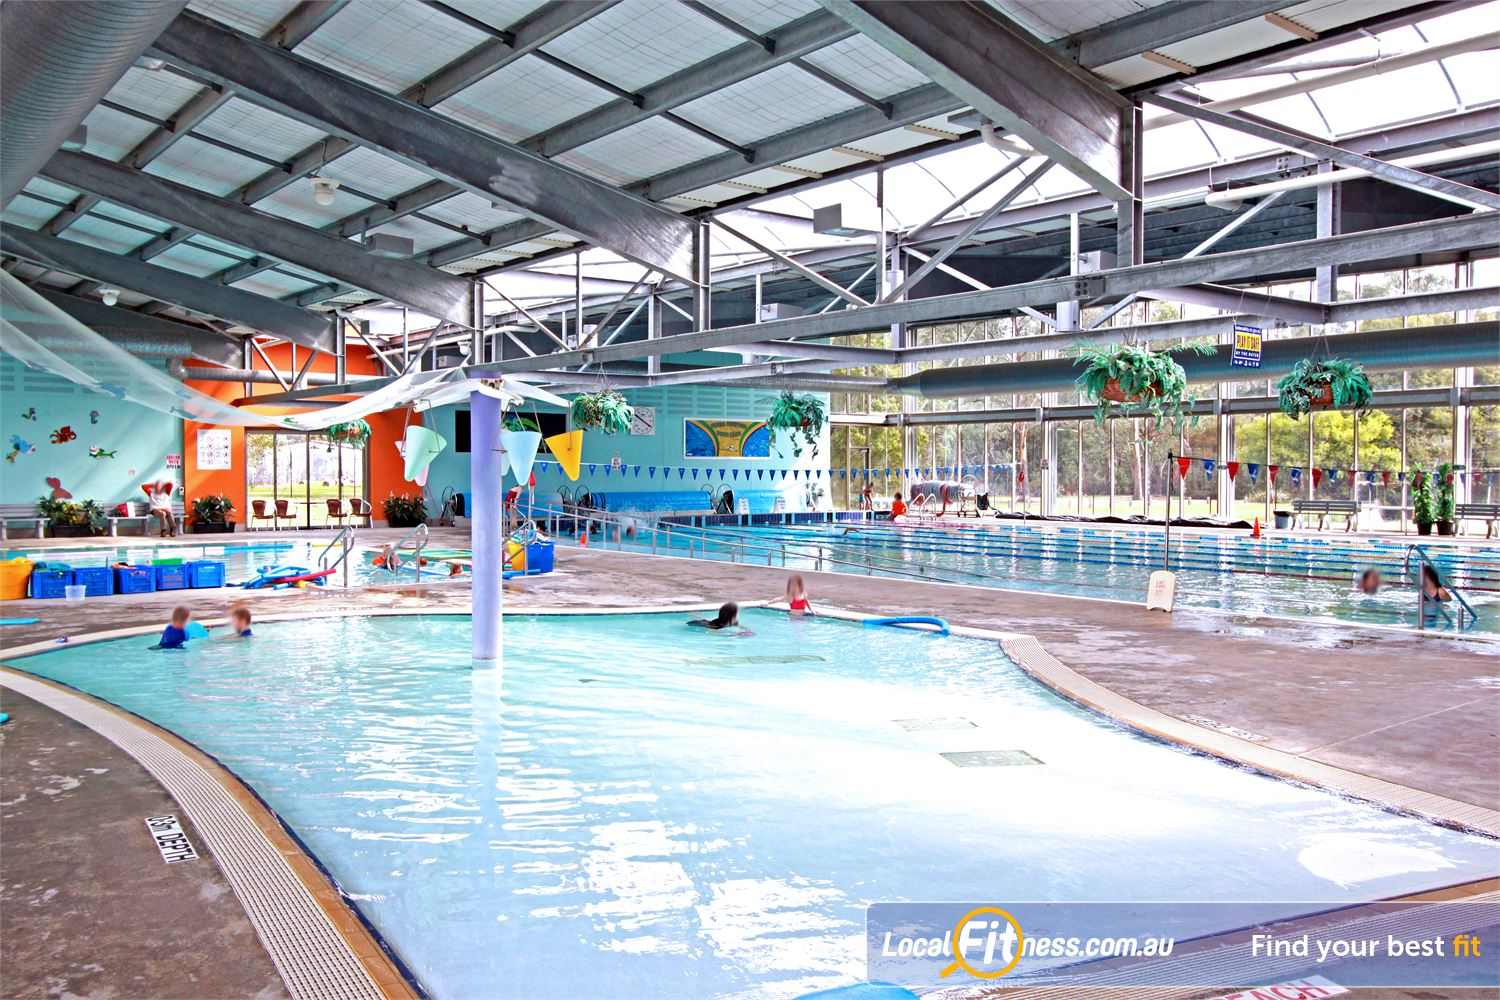 Yarra Recreation Centre Yarra Junction The Toodler pool includes water features for children